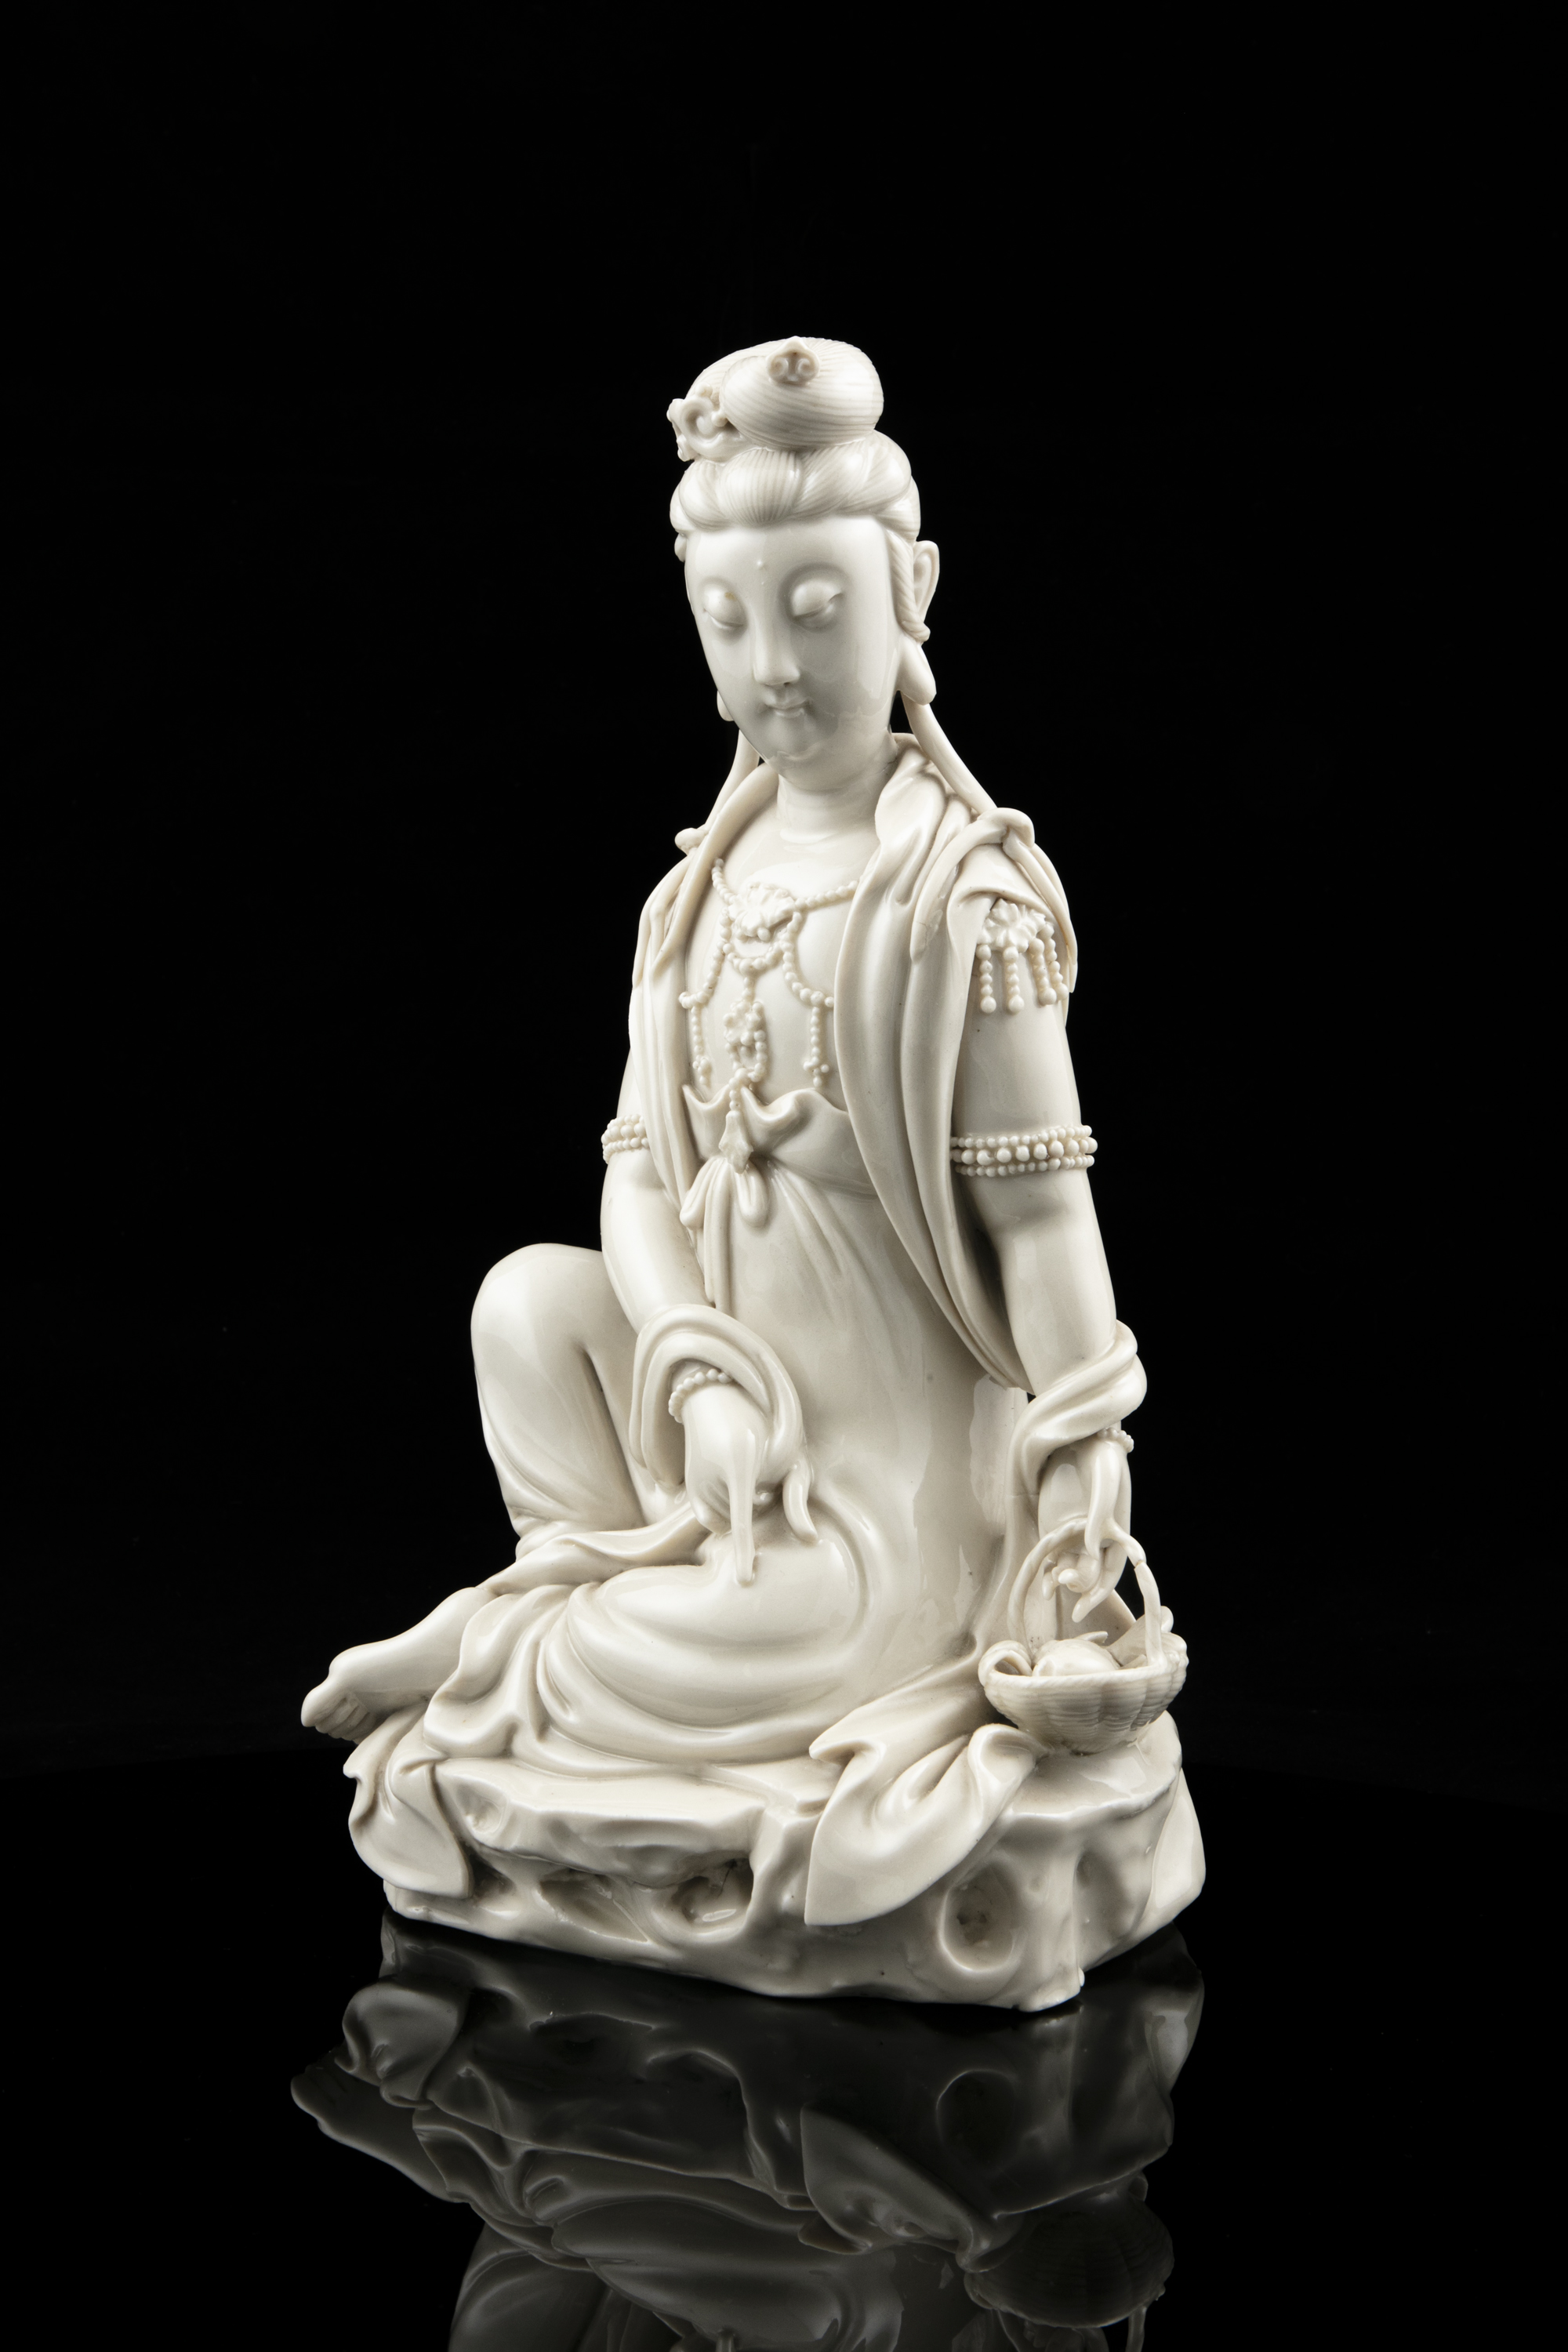 A LARGE DEHUA FIGURE OF A SEATED GUANYIN IMPRESSED WITH A HE CHAOZONG 何朝宗 CALABASH SHAPED SEAL - Image 16 of 48